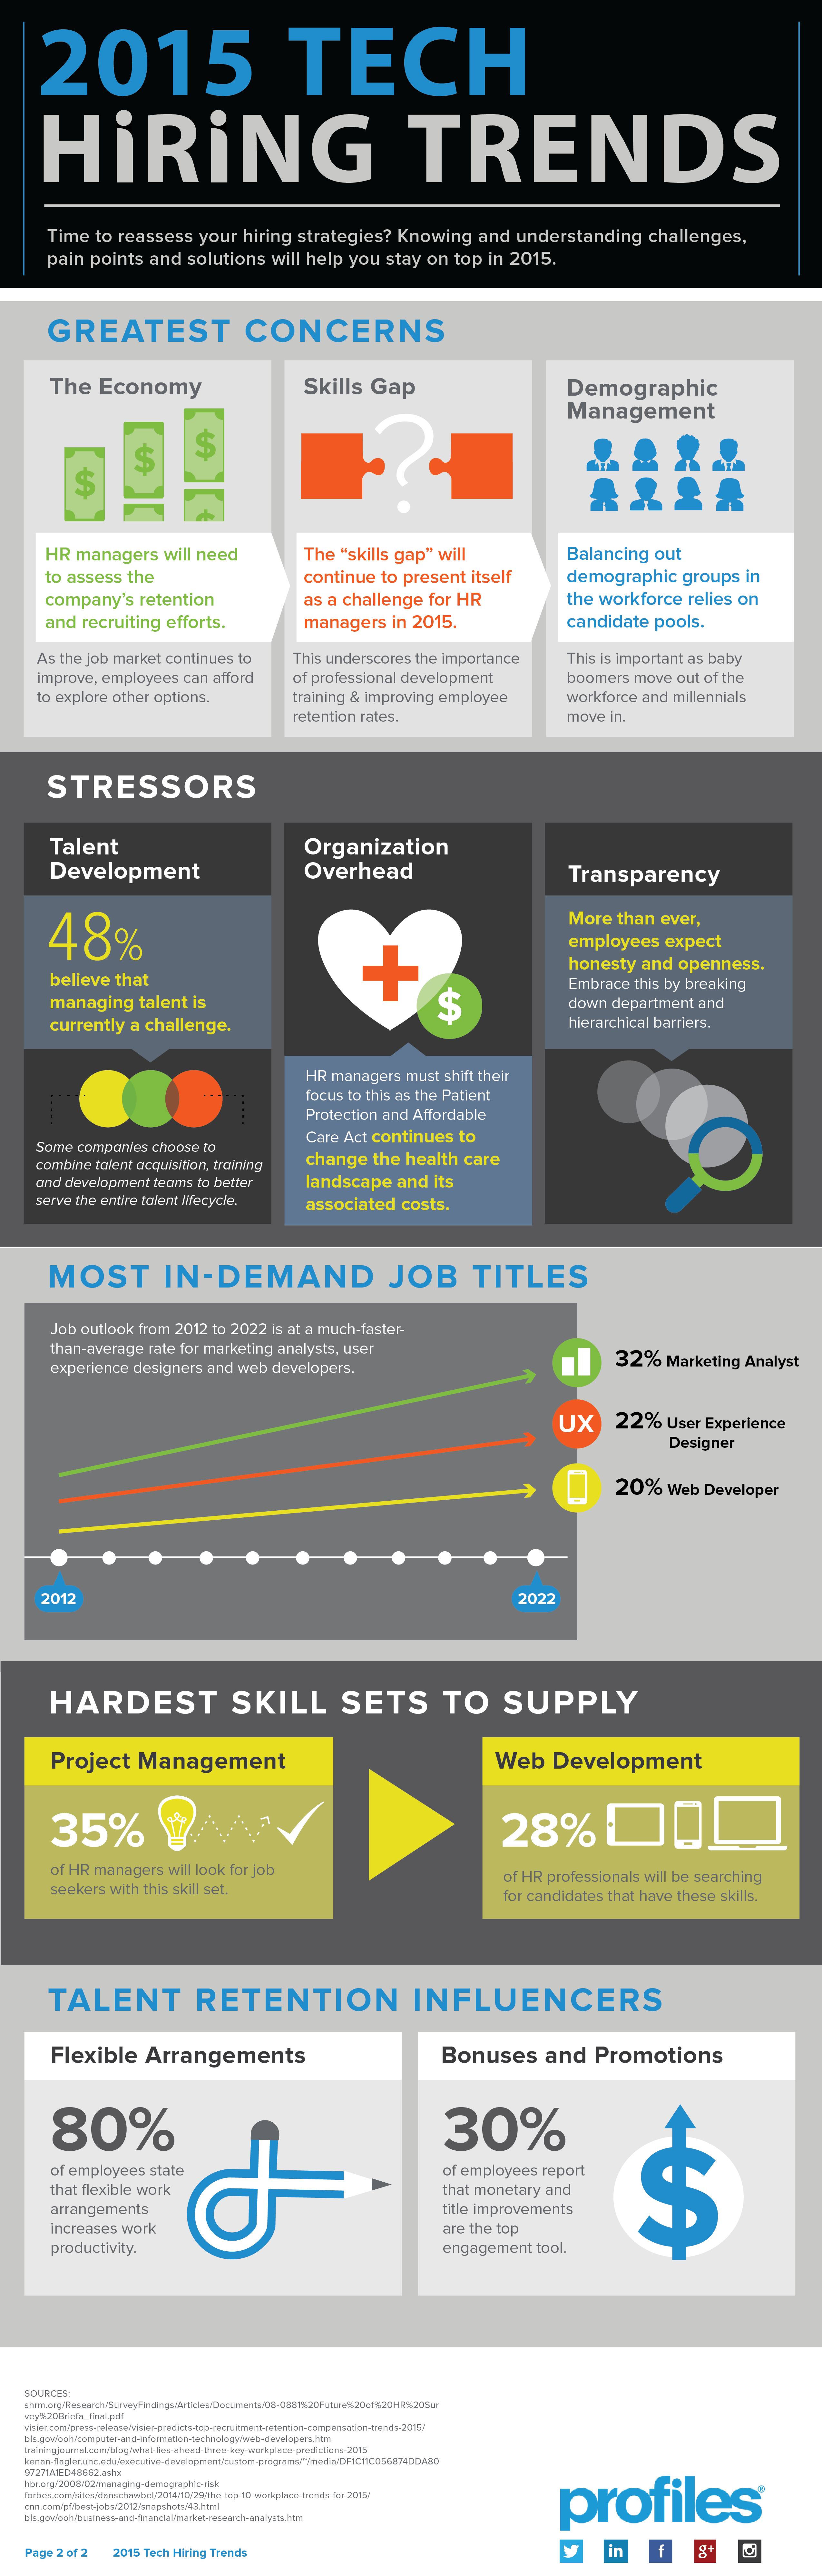 2015 Tech Hiring Trends [INFOGRAPHIC]